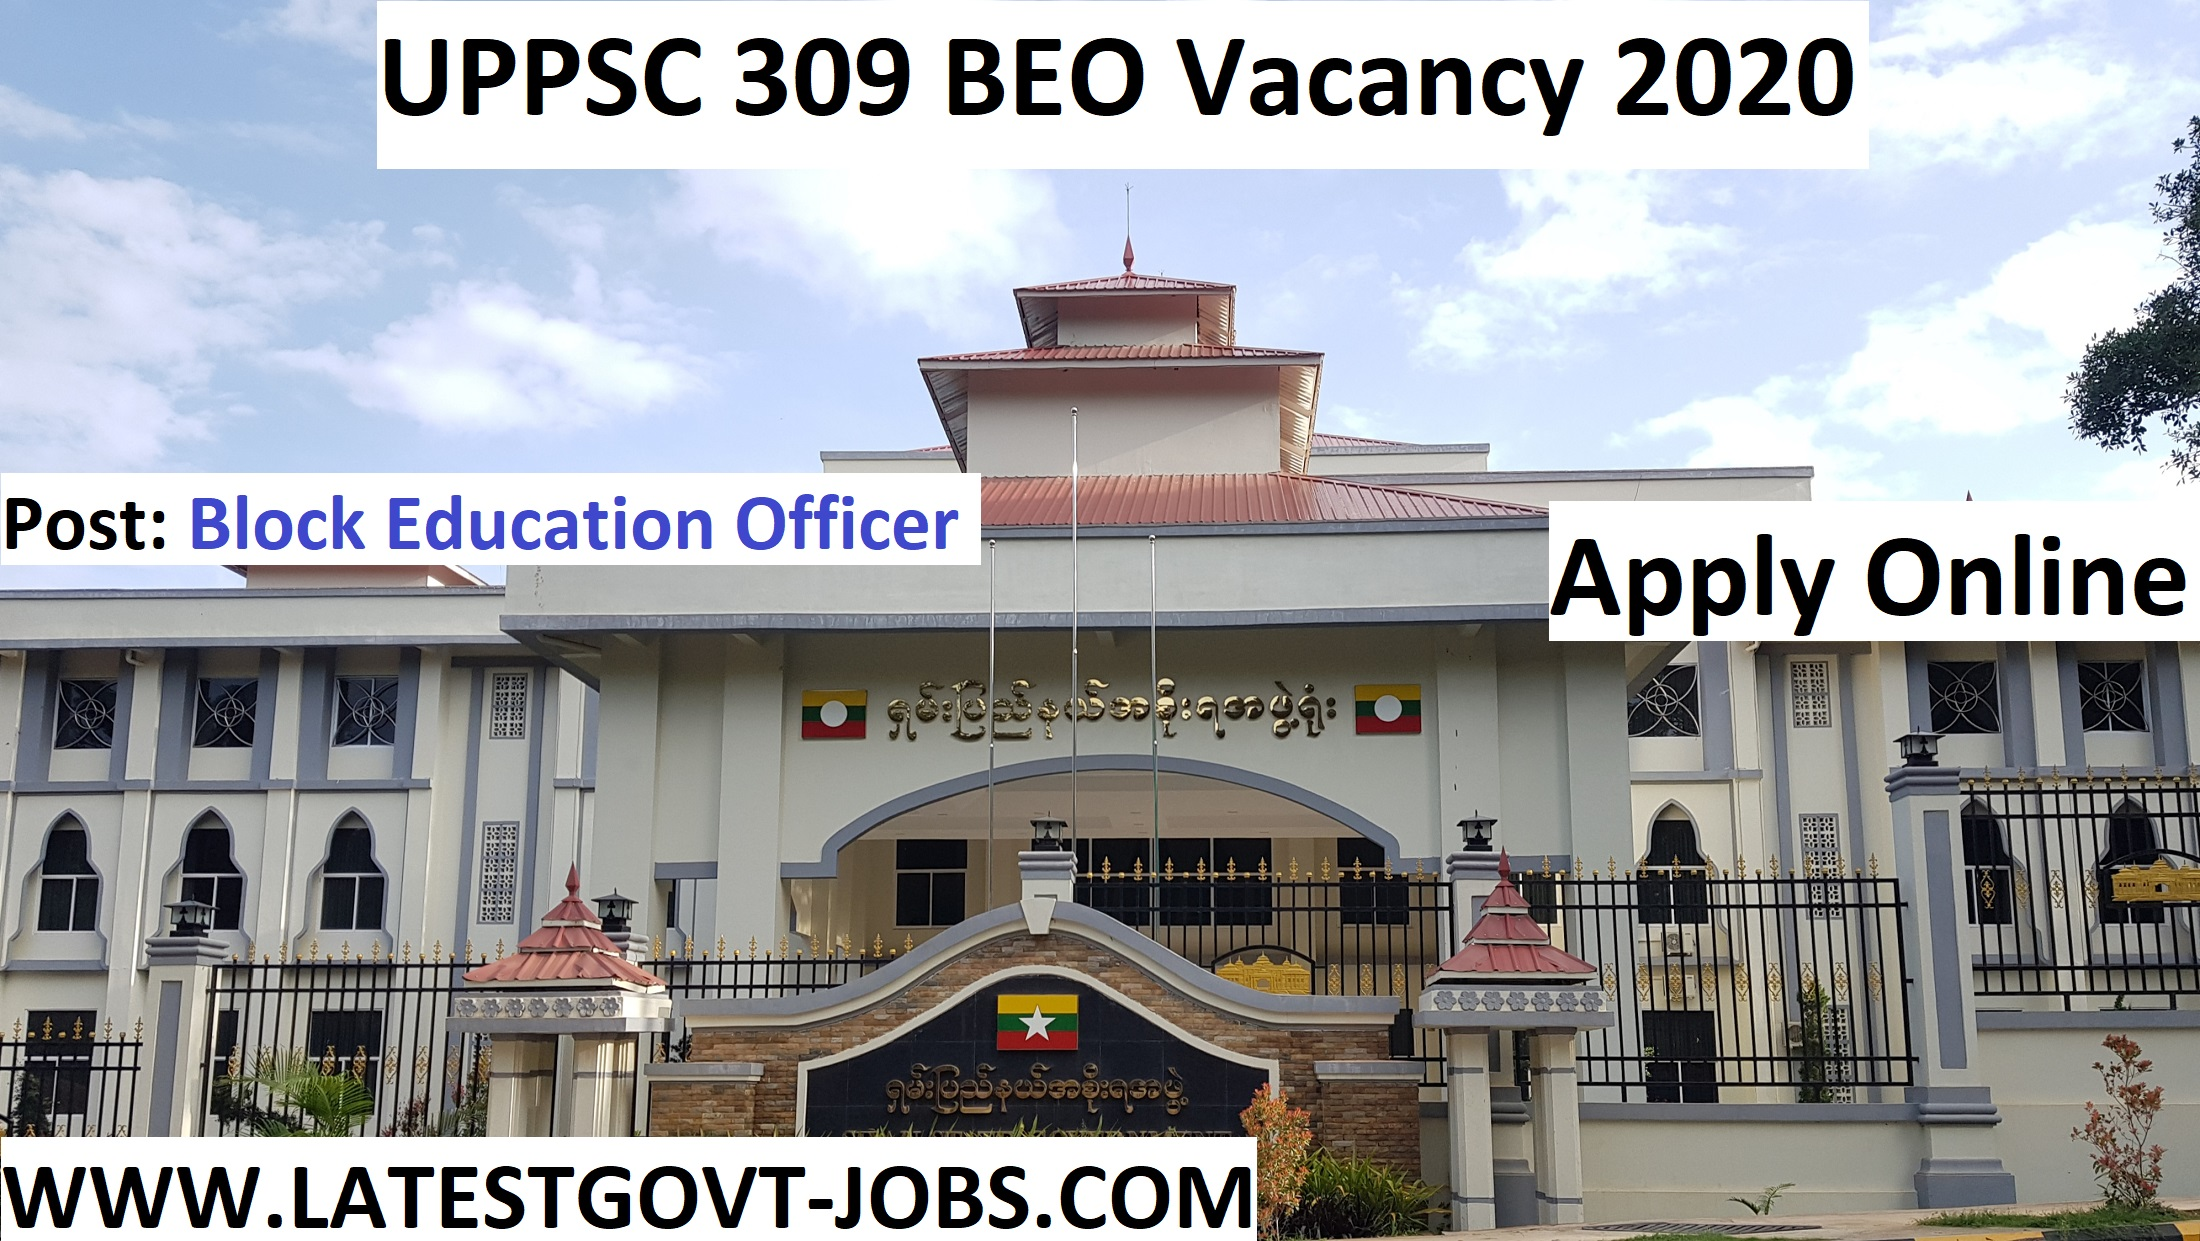 uppsc beo latest govt job